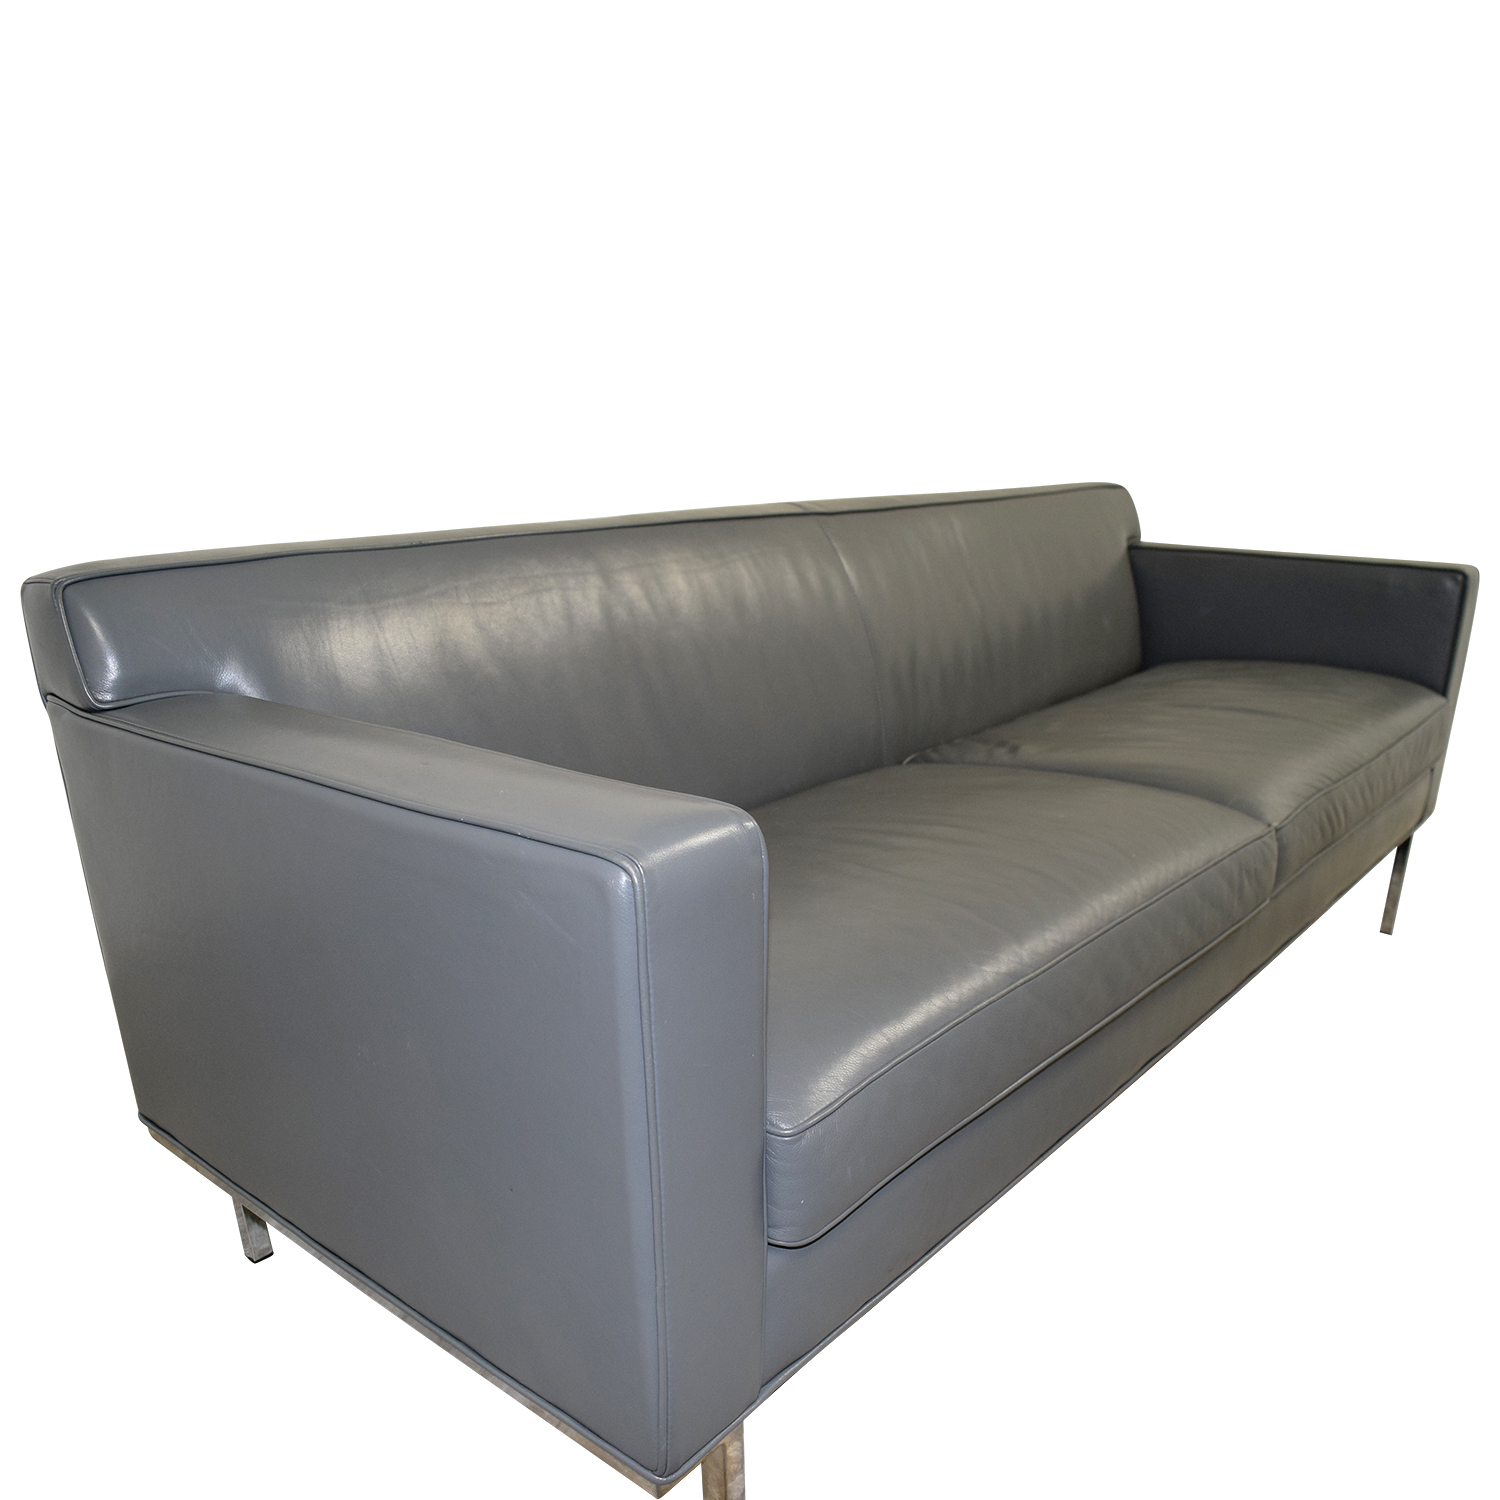 82 off design within reach design within reach theater grey sofa sofas. Black Bedroom Furniture Sets. Home Design Ideas